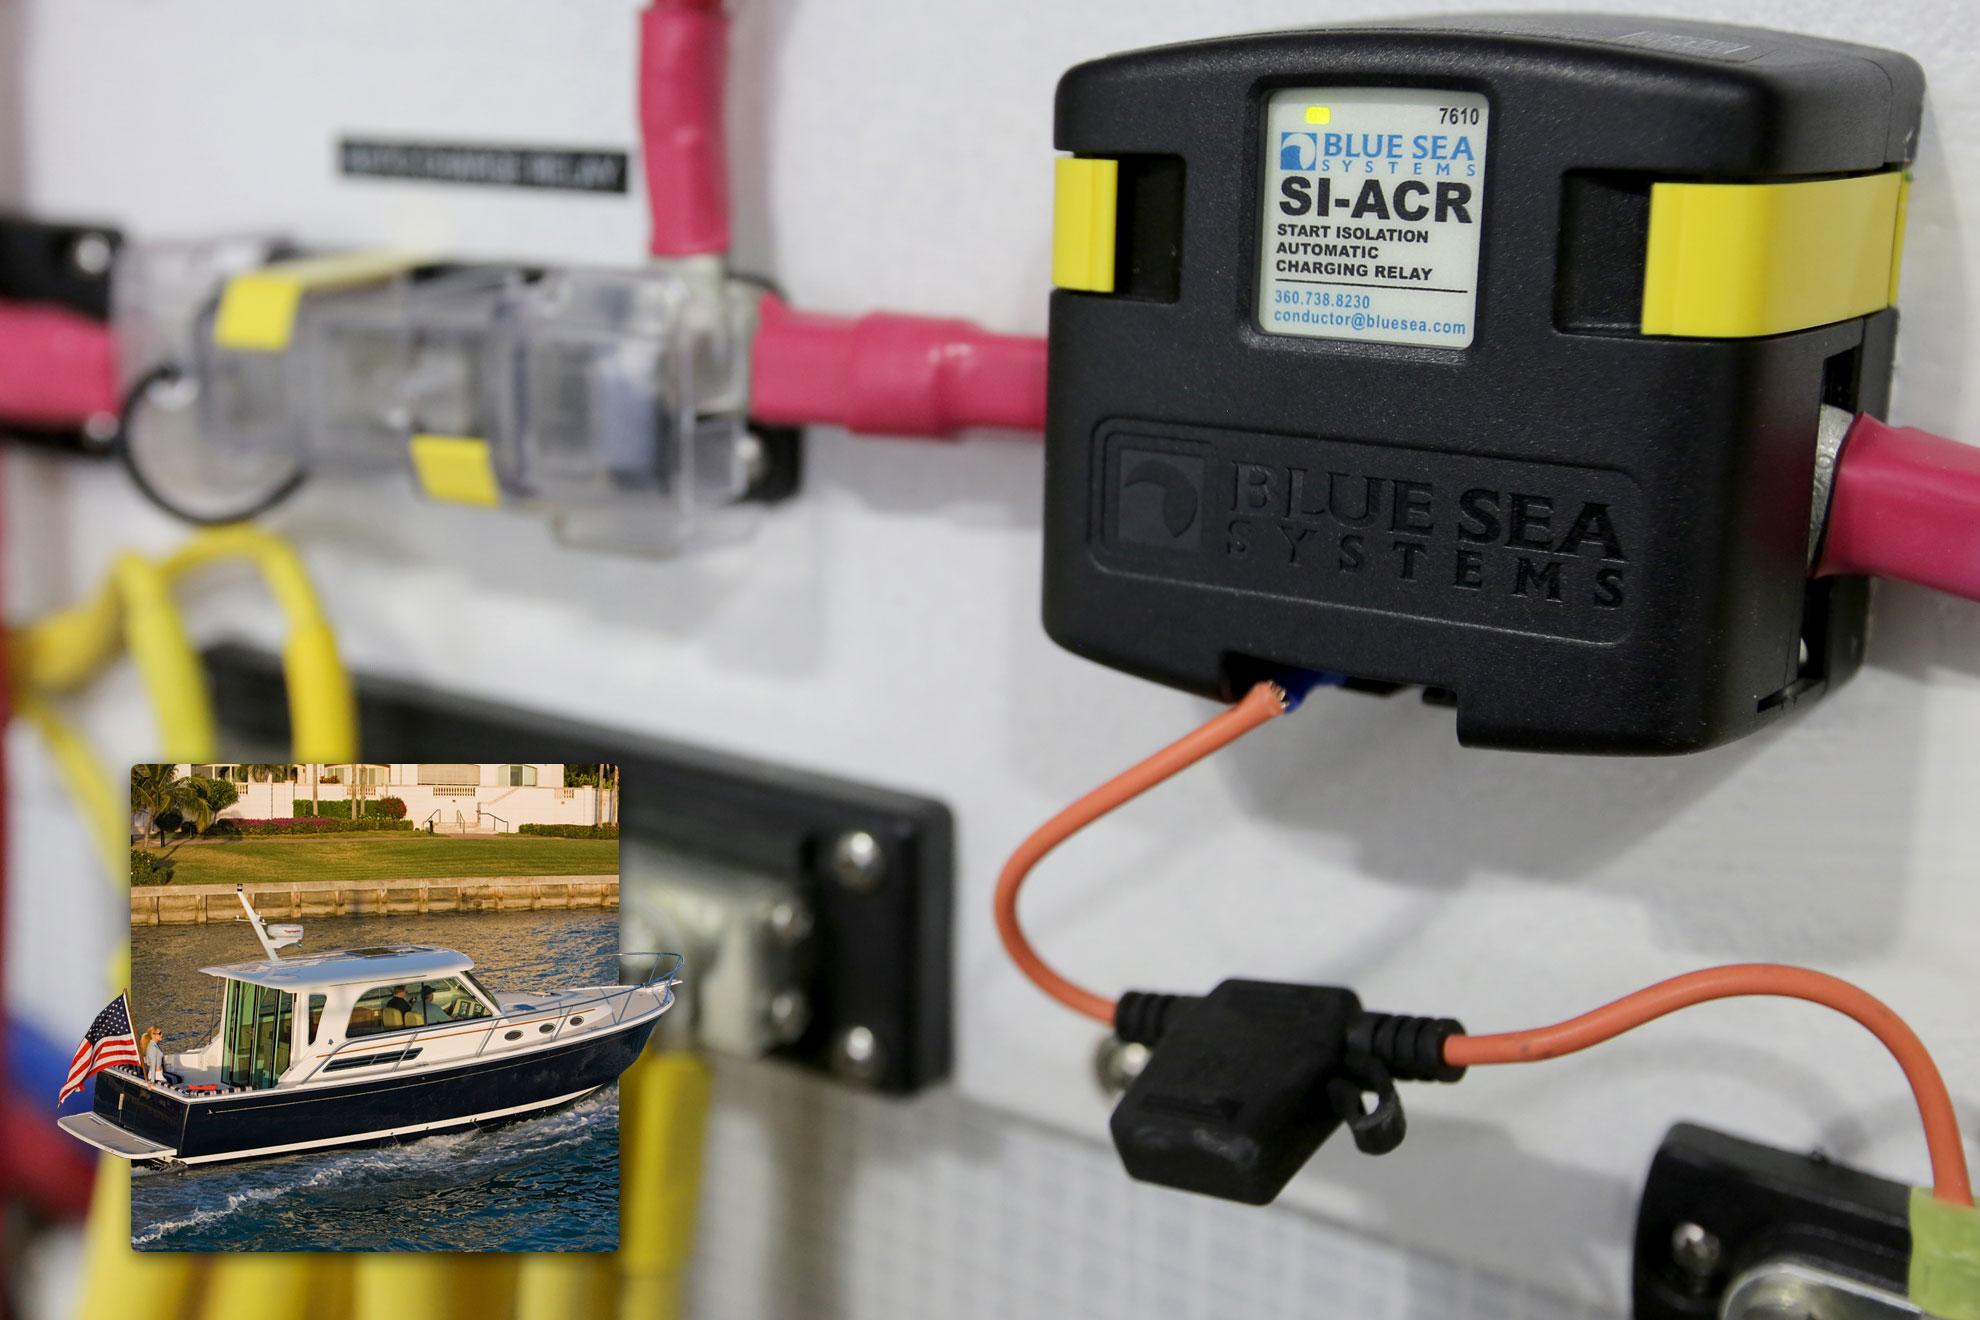 12 volt wiring diagram for boats gfci feed through method si-acr automatic charging relay - 12/24v dc 120a blue sea systems